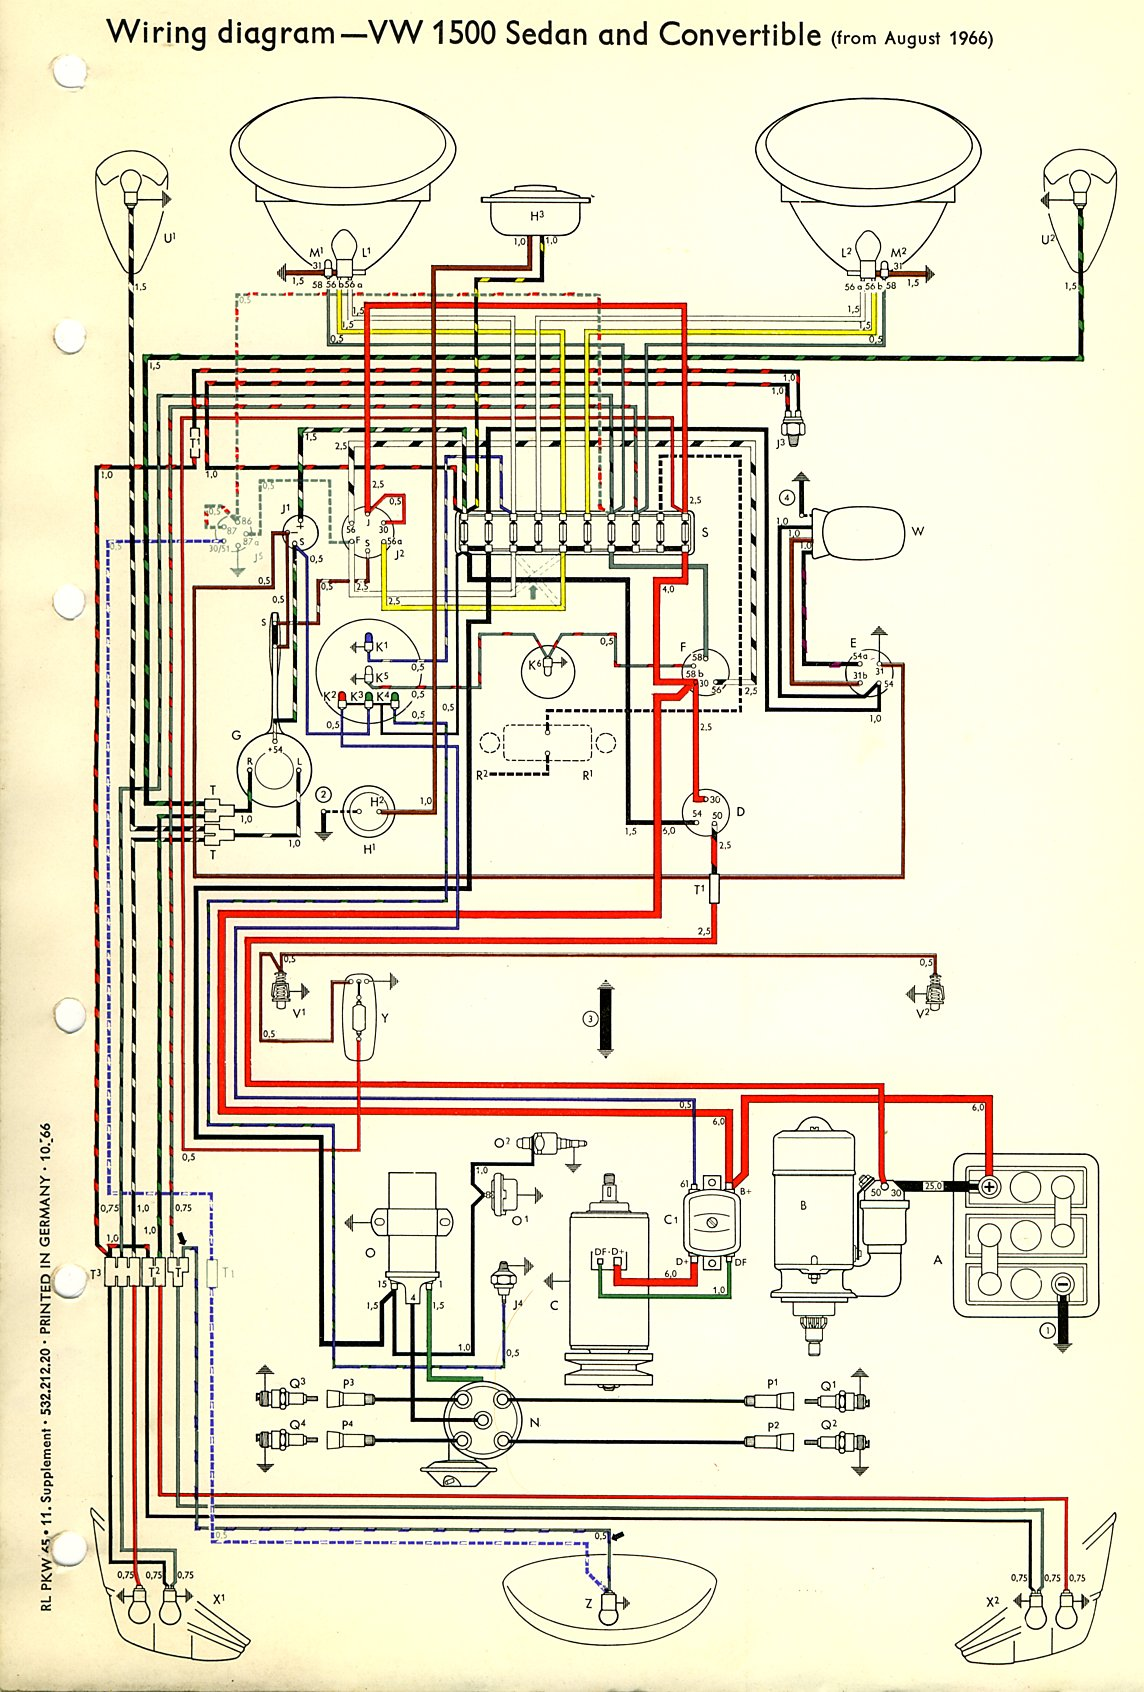 hight resolution of 68 vw wiring diagram headlight switch wiring library68 vw wiring diagram headlight switch